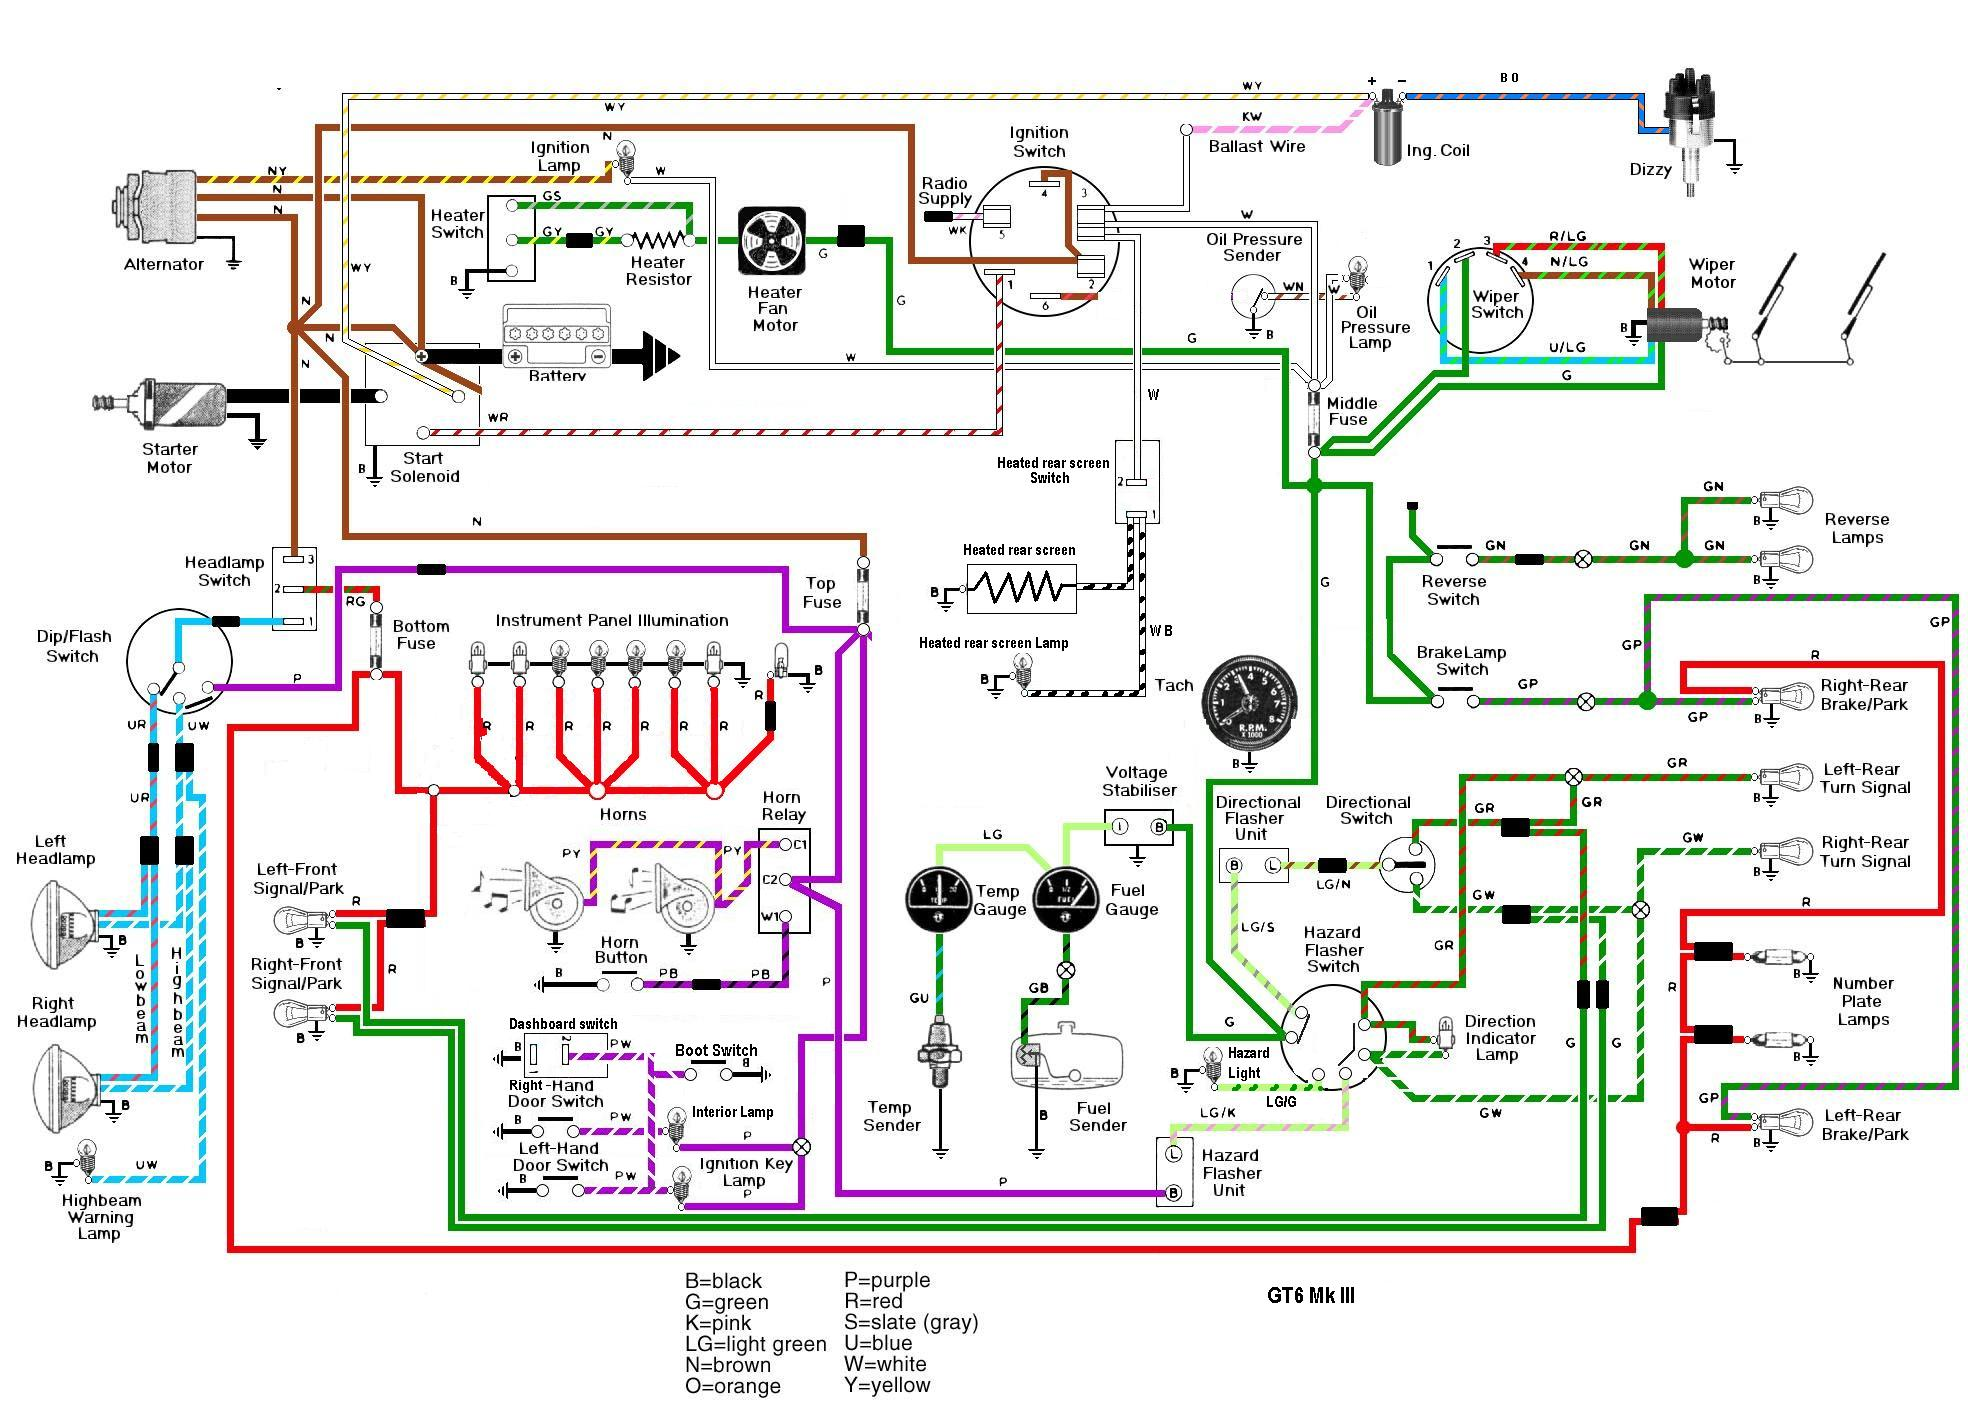 GT6MkIIIwiring wiring schematics and diagrams triumph spitfire, gt6, herald triumph wiring diagram at bayanpartner.co